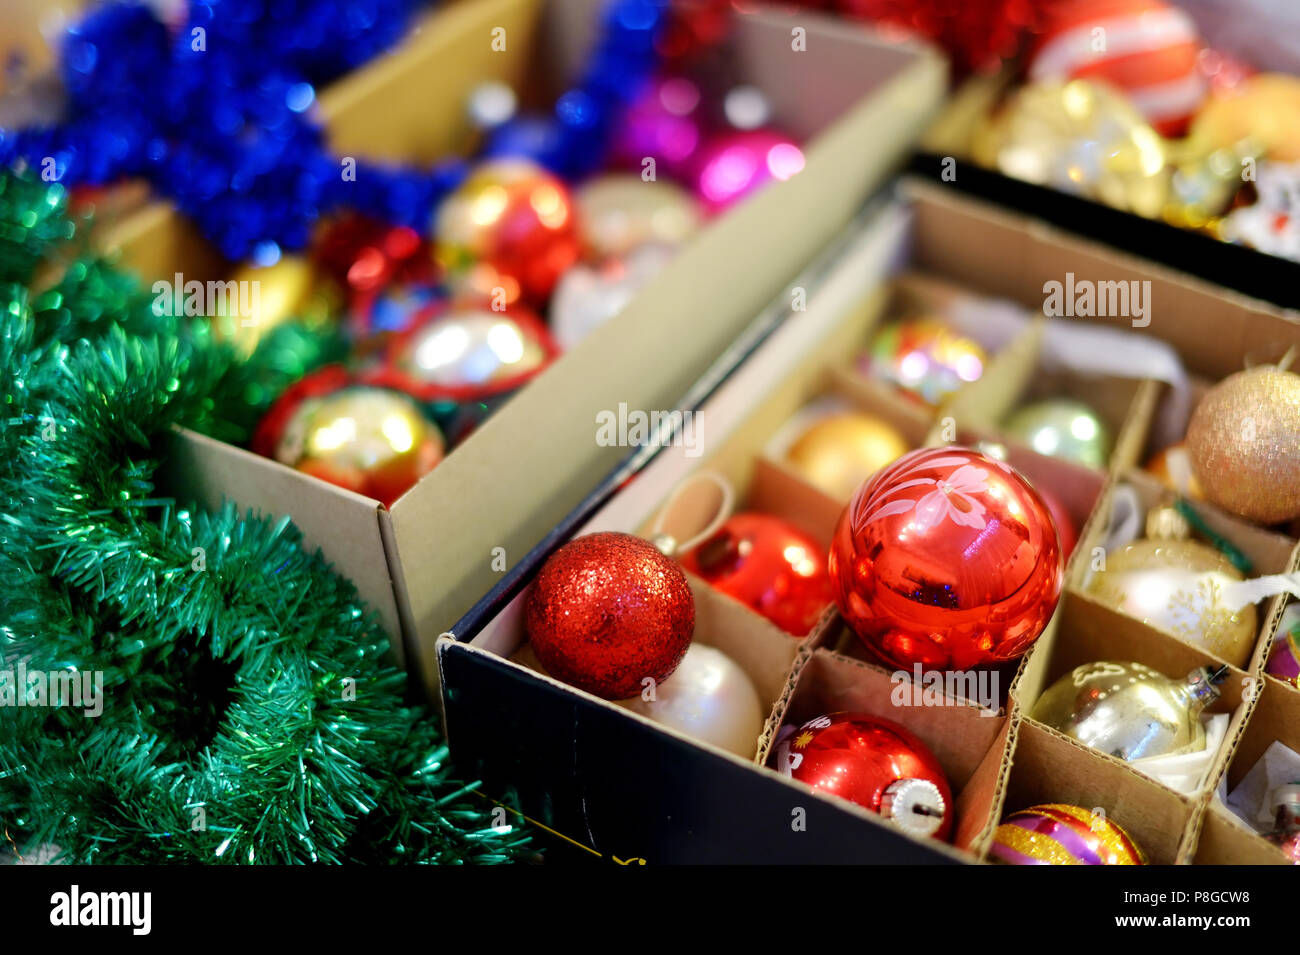 various colorful christmas decorations in a boxes